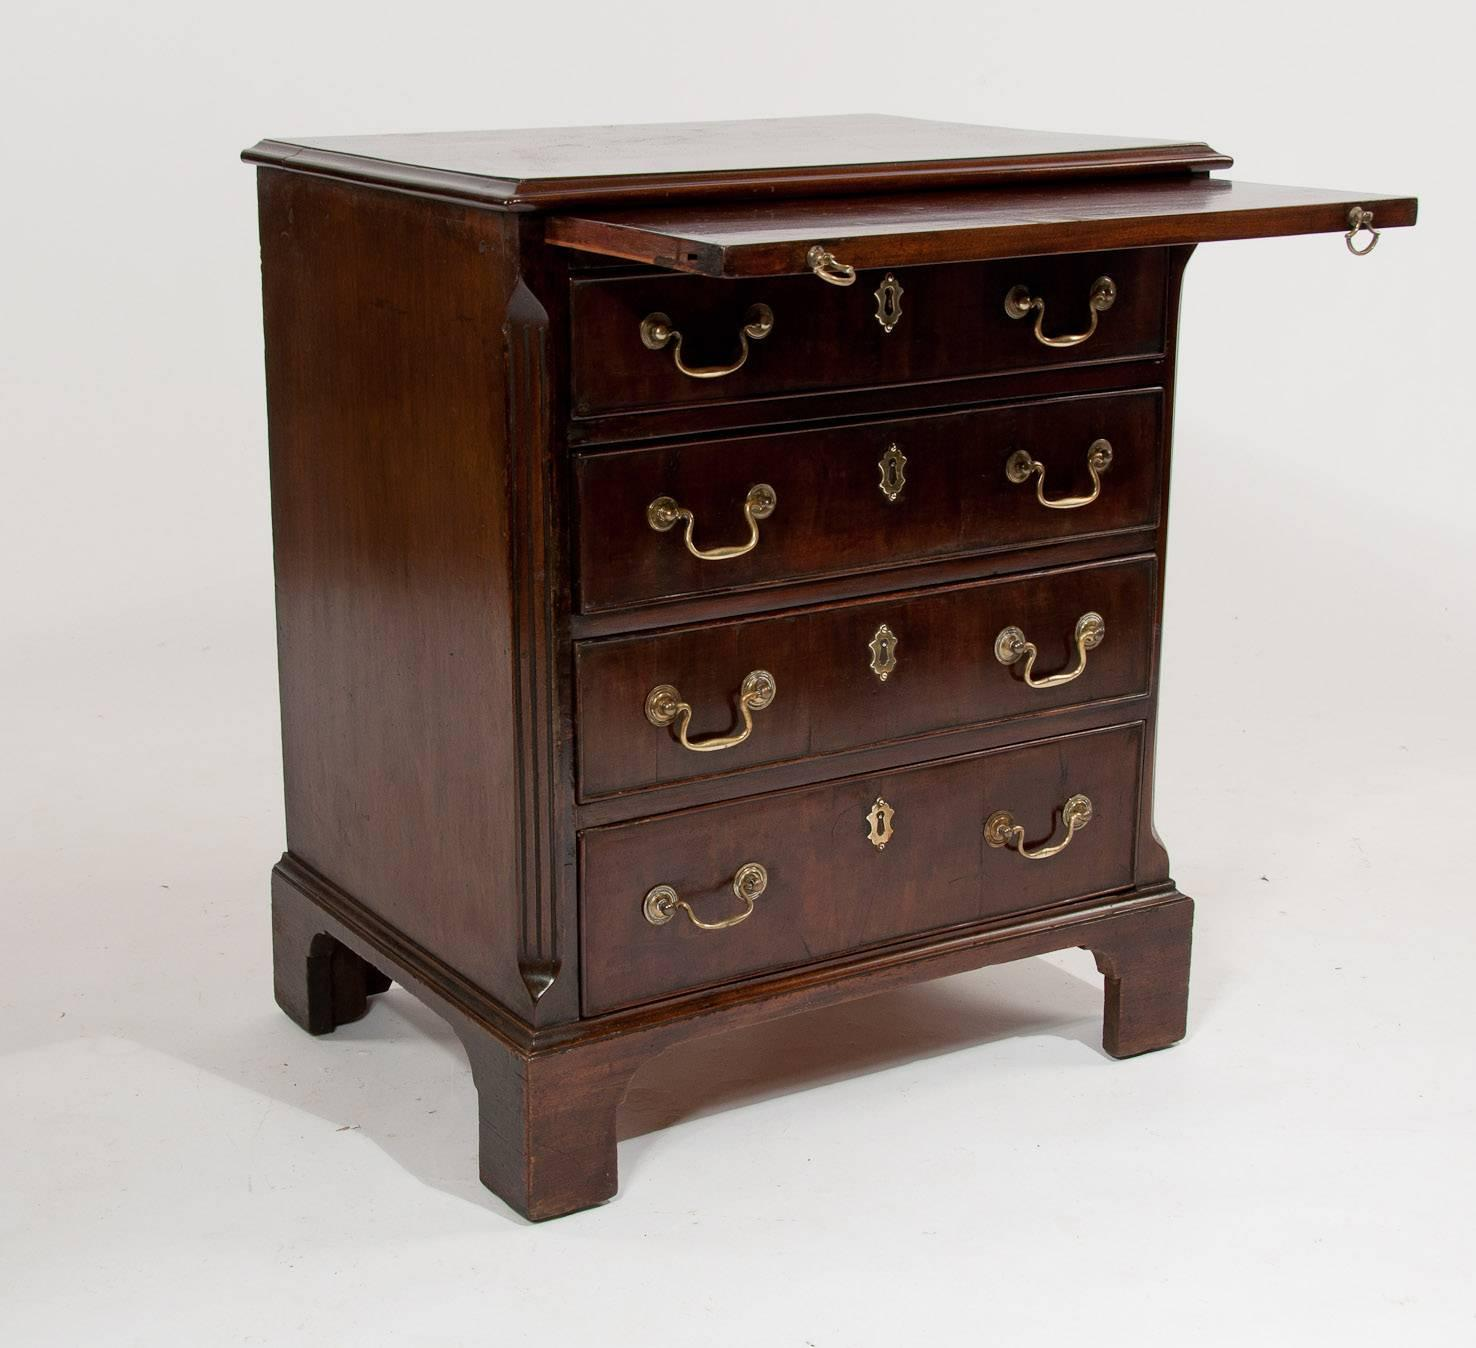 #321A12 Small George III Mahogany Chest Of Drawers At 1stdibs with 1476x1348 px of Highly Rated Small Storage Chests 13481476 picture/photo @ avoidforclosure.info